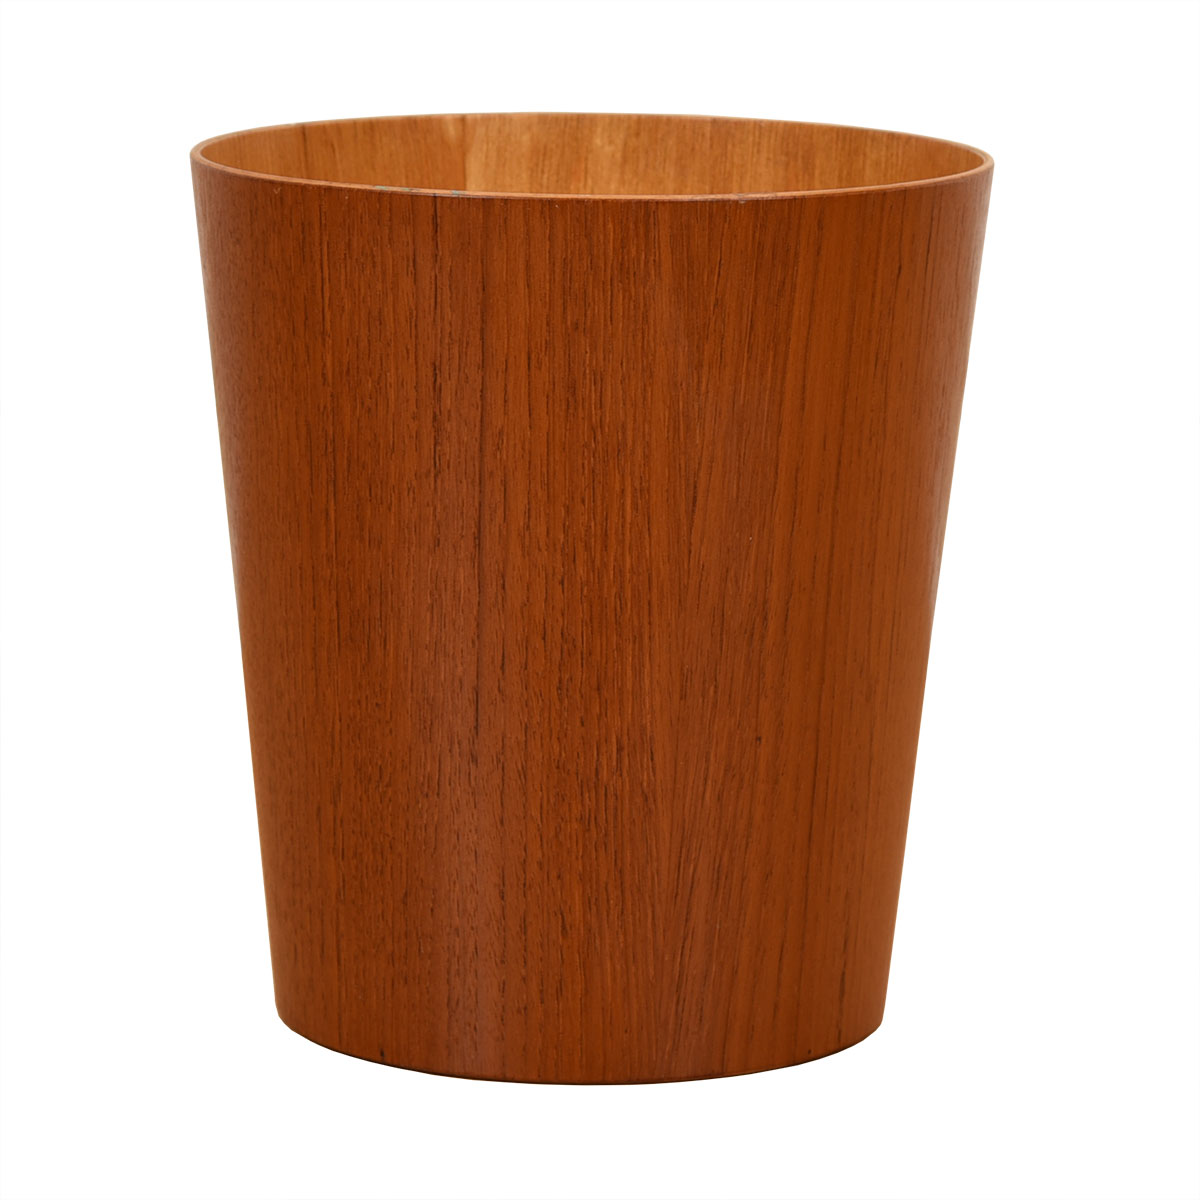 Swedish Wastebasket in Teak